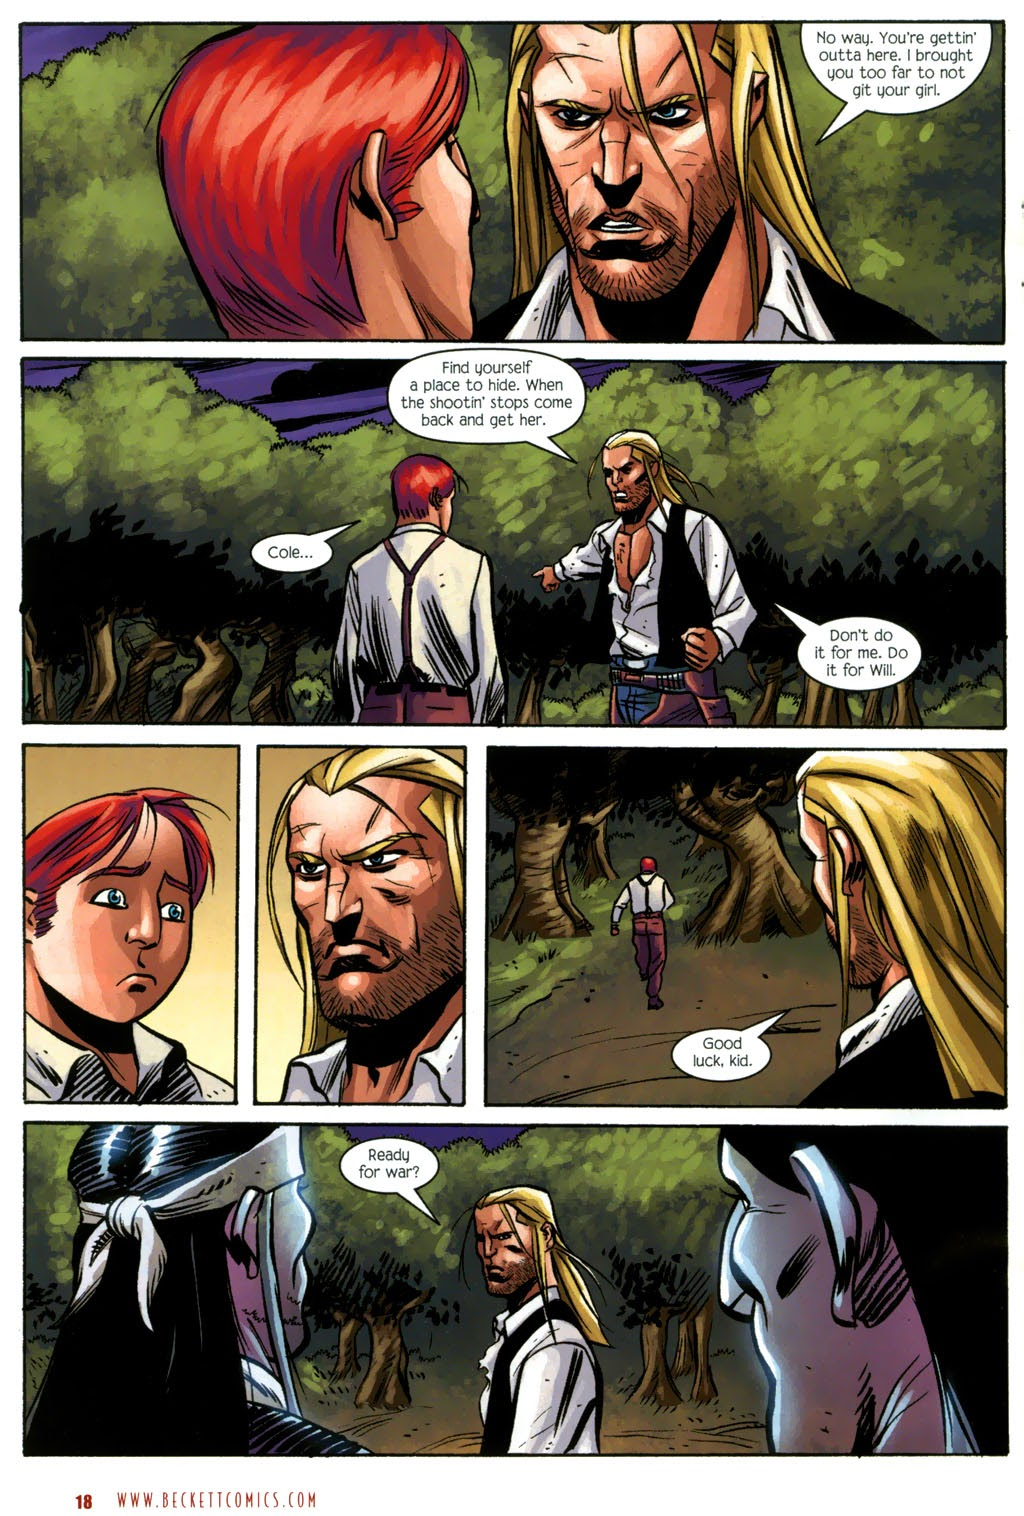 Read online The Ballad of Sleeping Beauty comic -  Issue #7 - 20